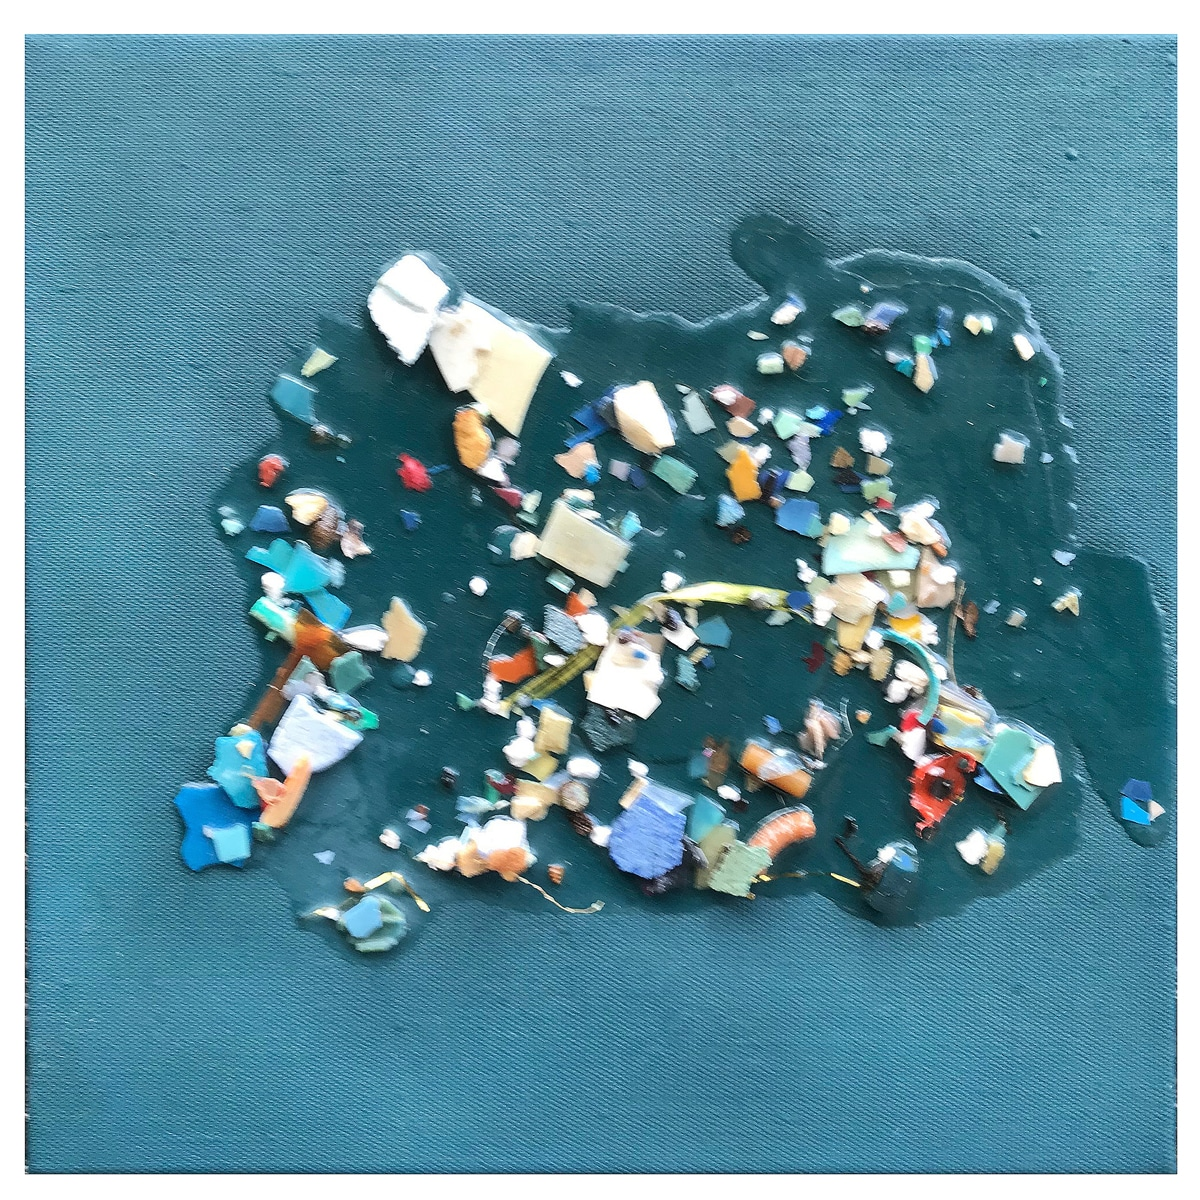 Pacific Garbage Patch Study #13